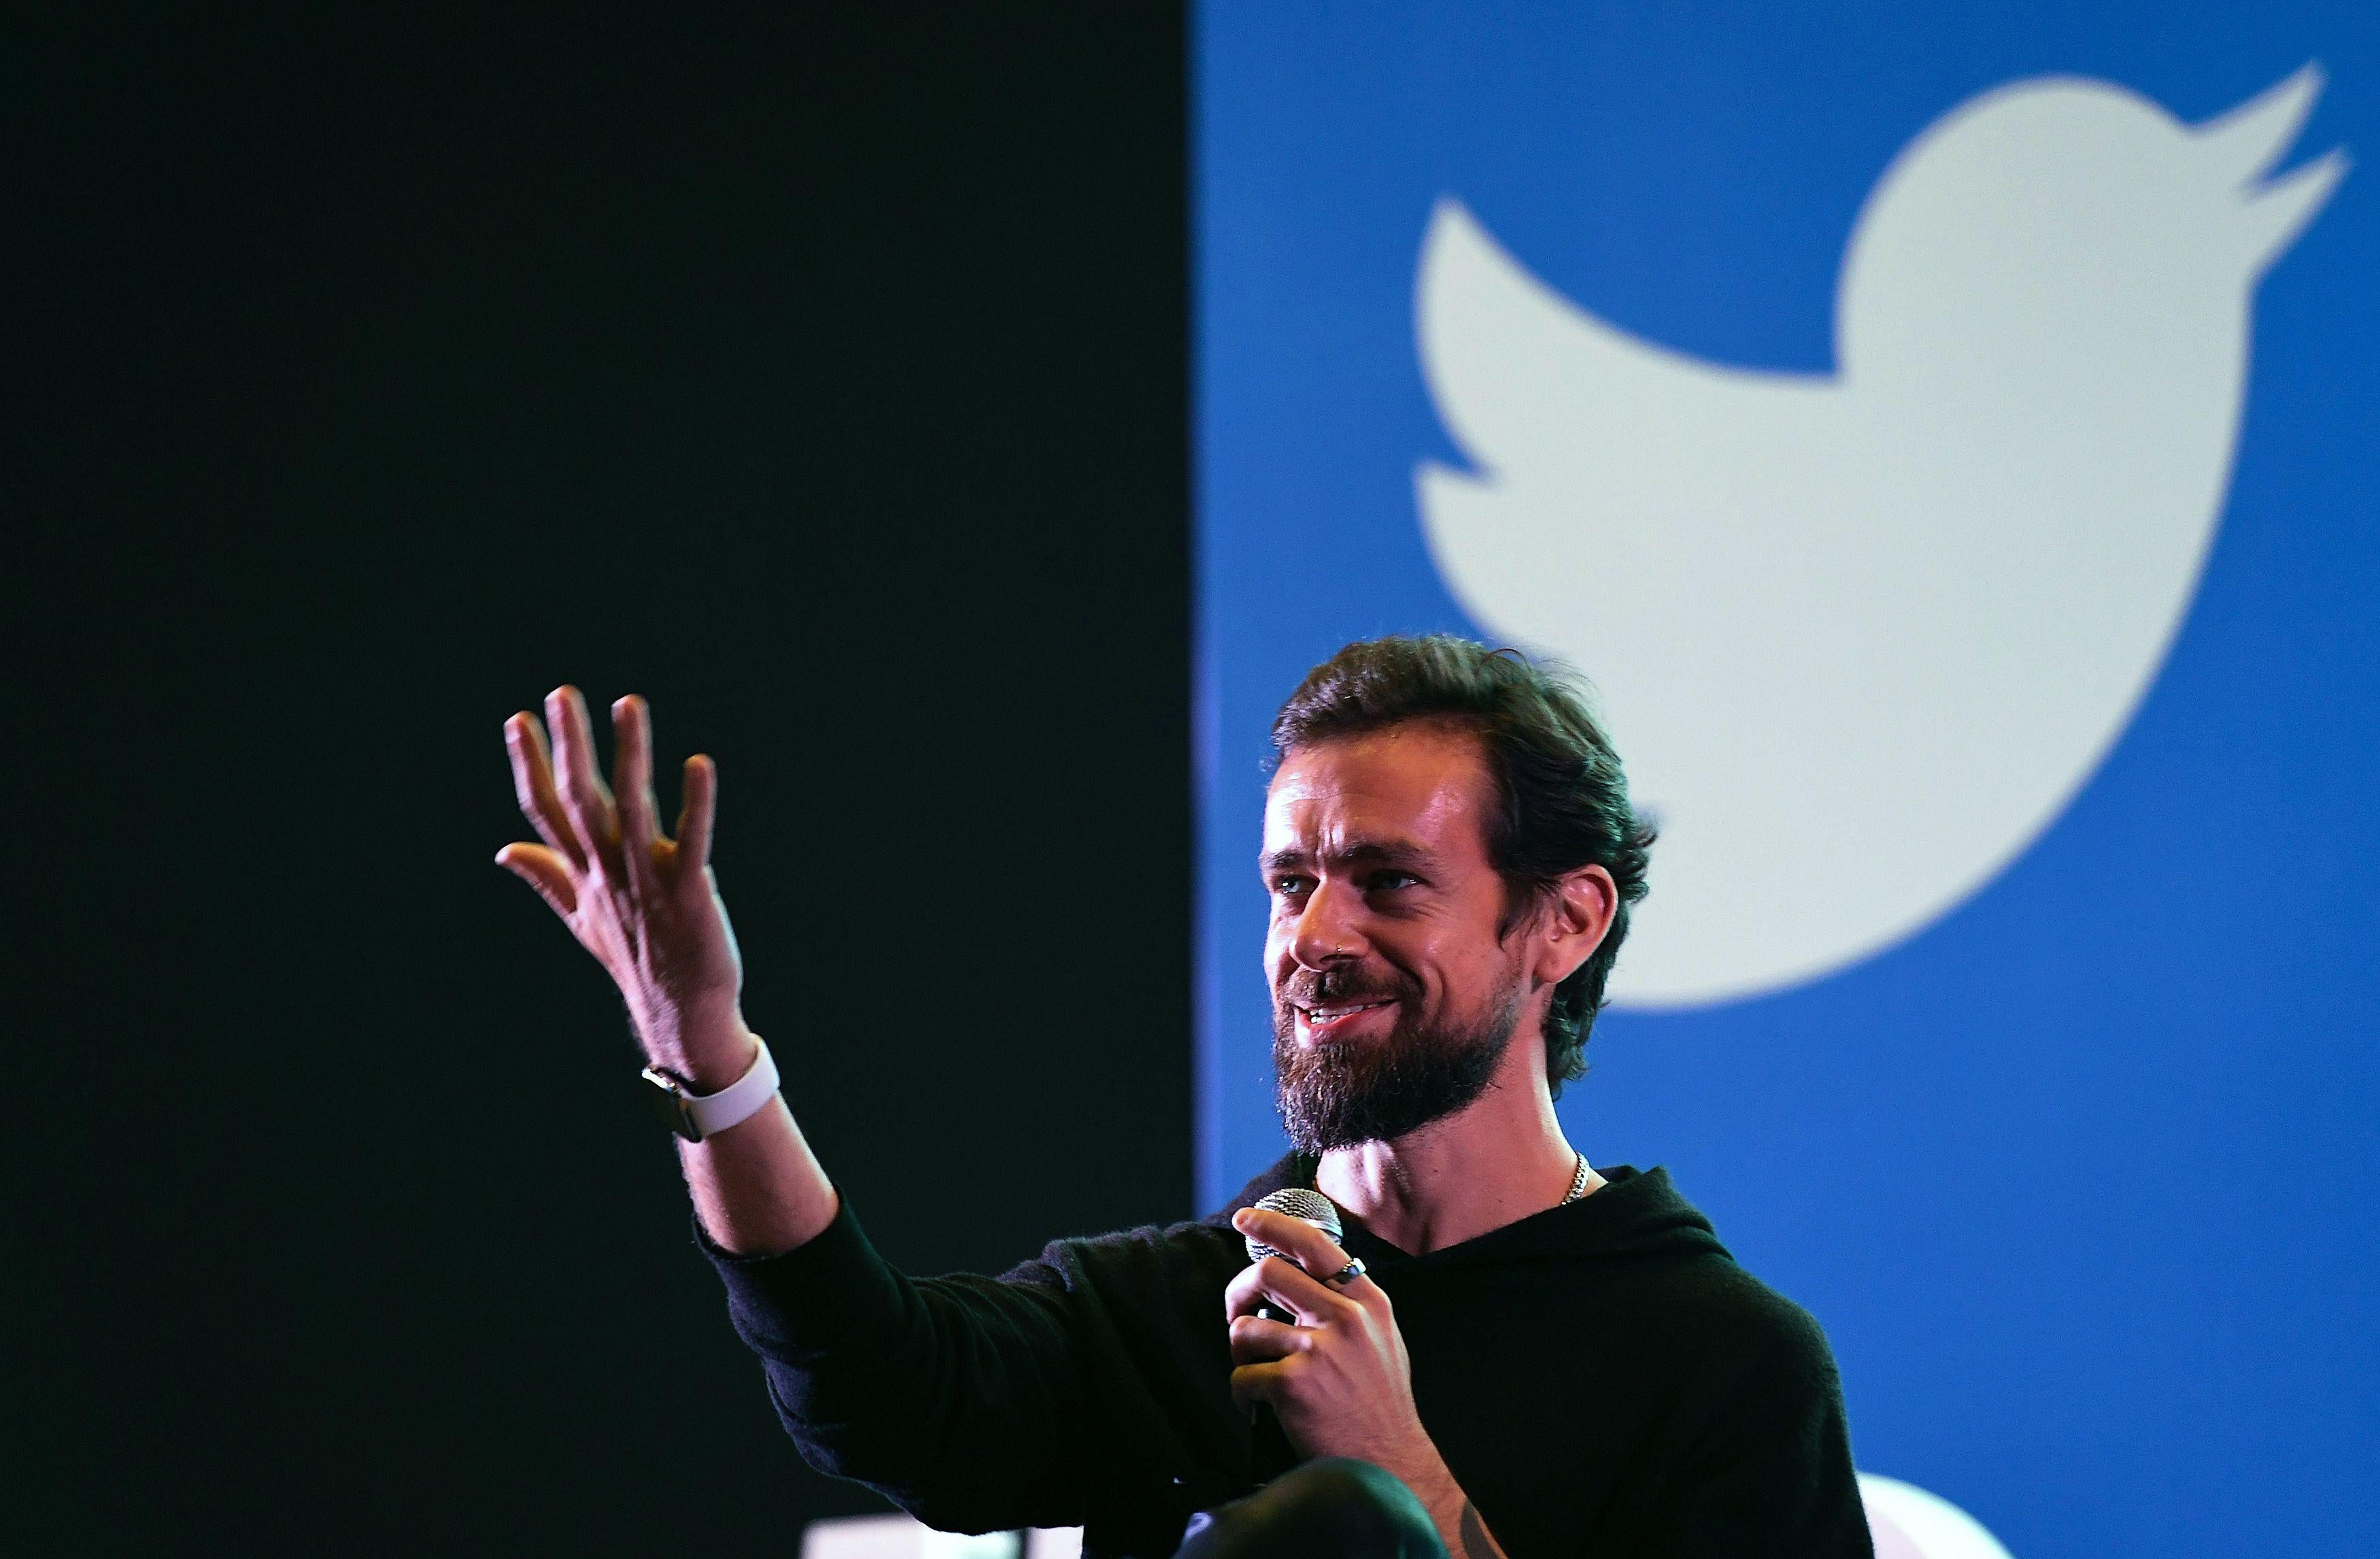 Twitter CEO Jack Dorsey during a town hall meeting with college students in New Delhi on Nov. 12, 2018.